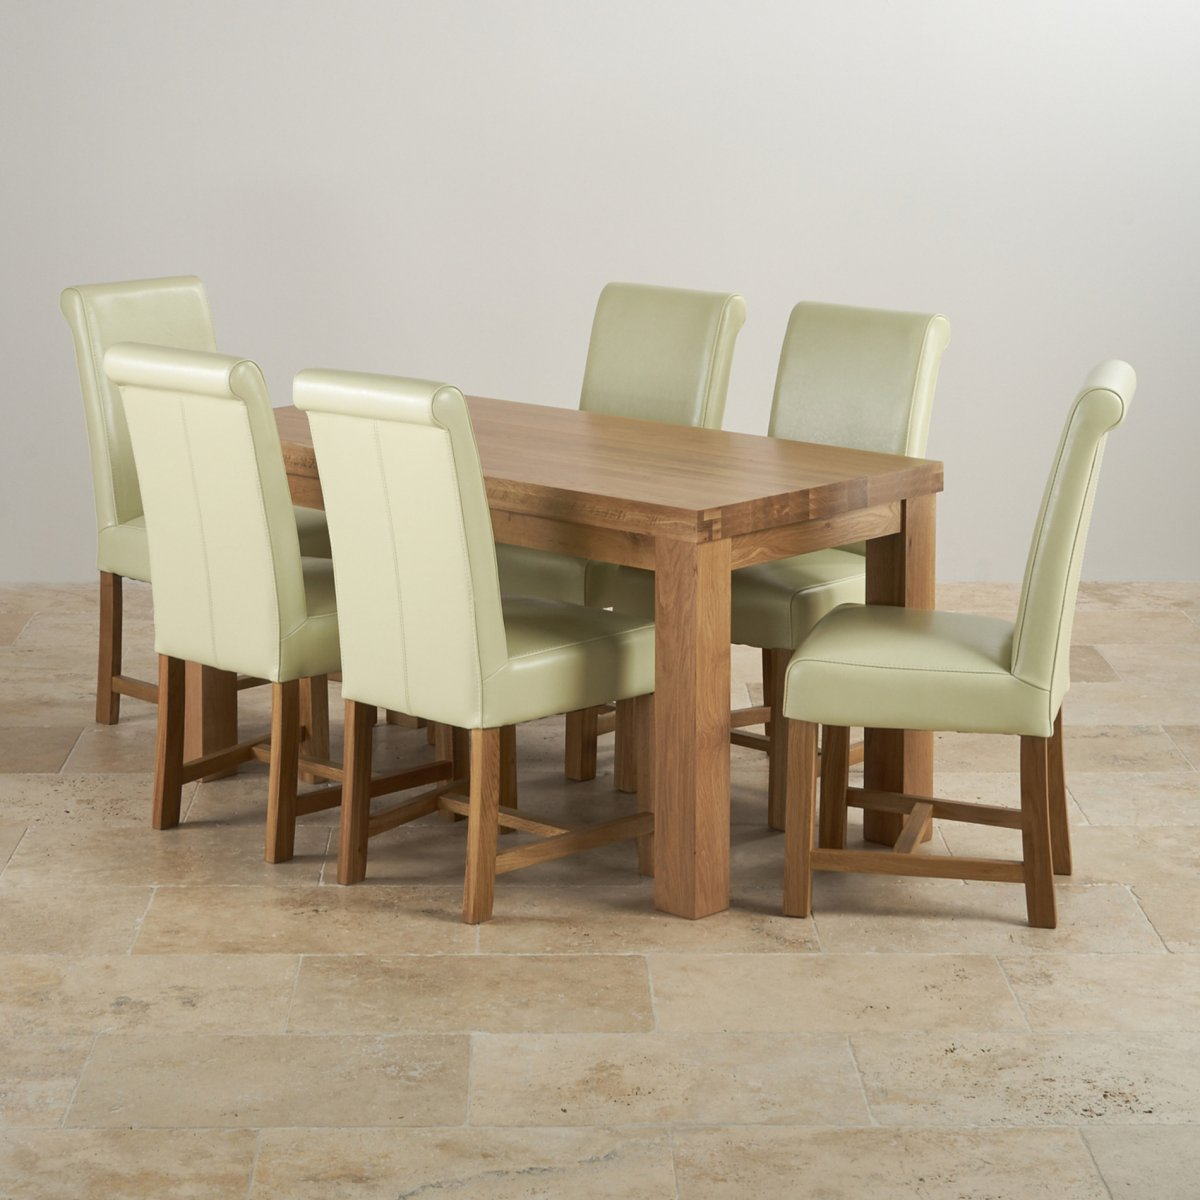 oak dining set 6 chairs rocker gaming chair bluetooth contemporary in table 43 cream leather